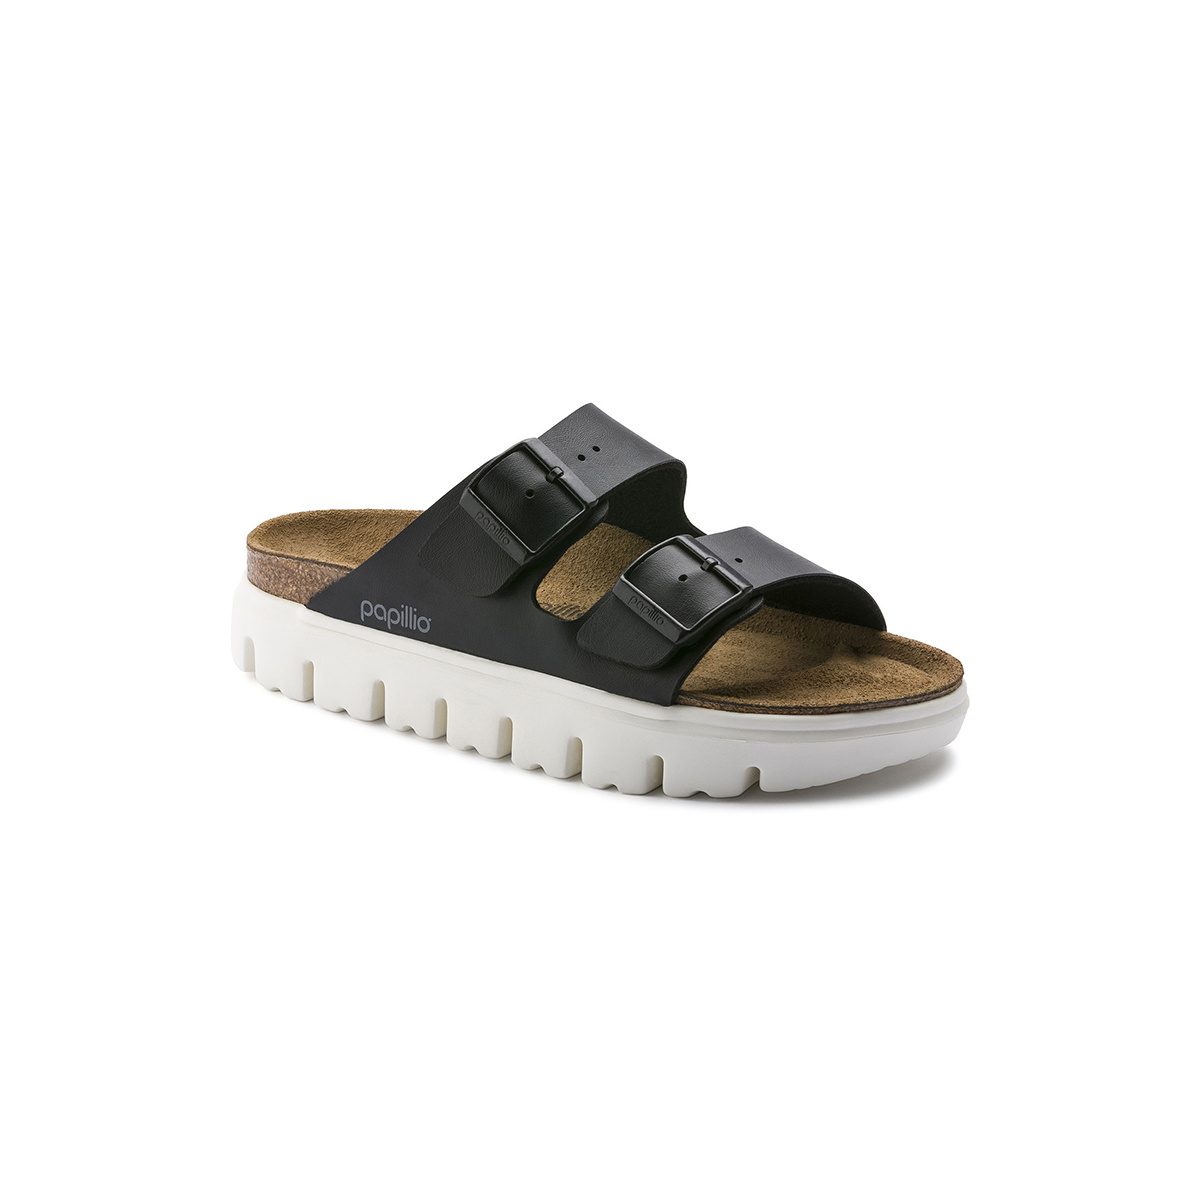 Birkenstock Arizona Chunky BirkoFlor - Narrow